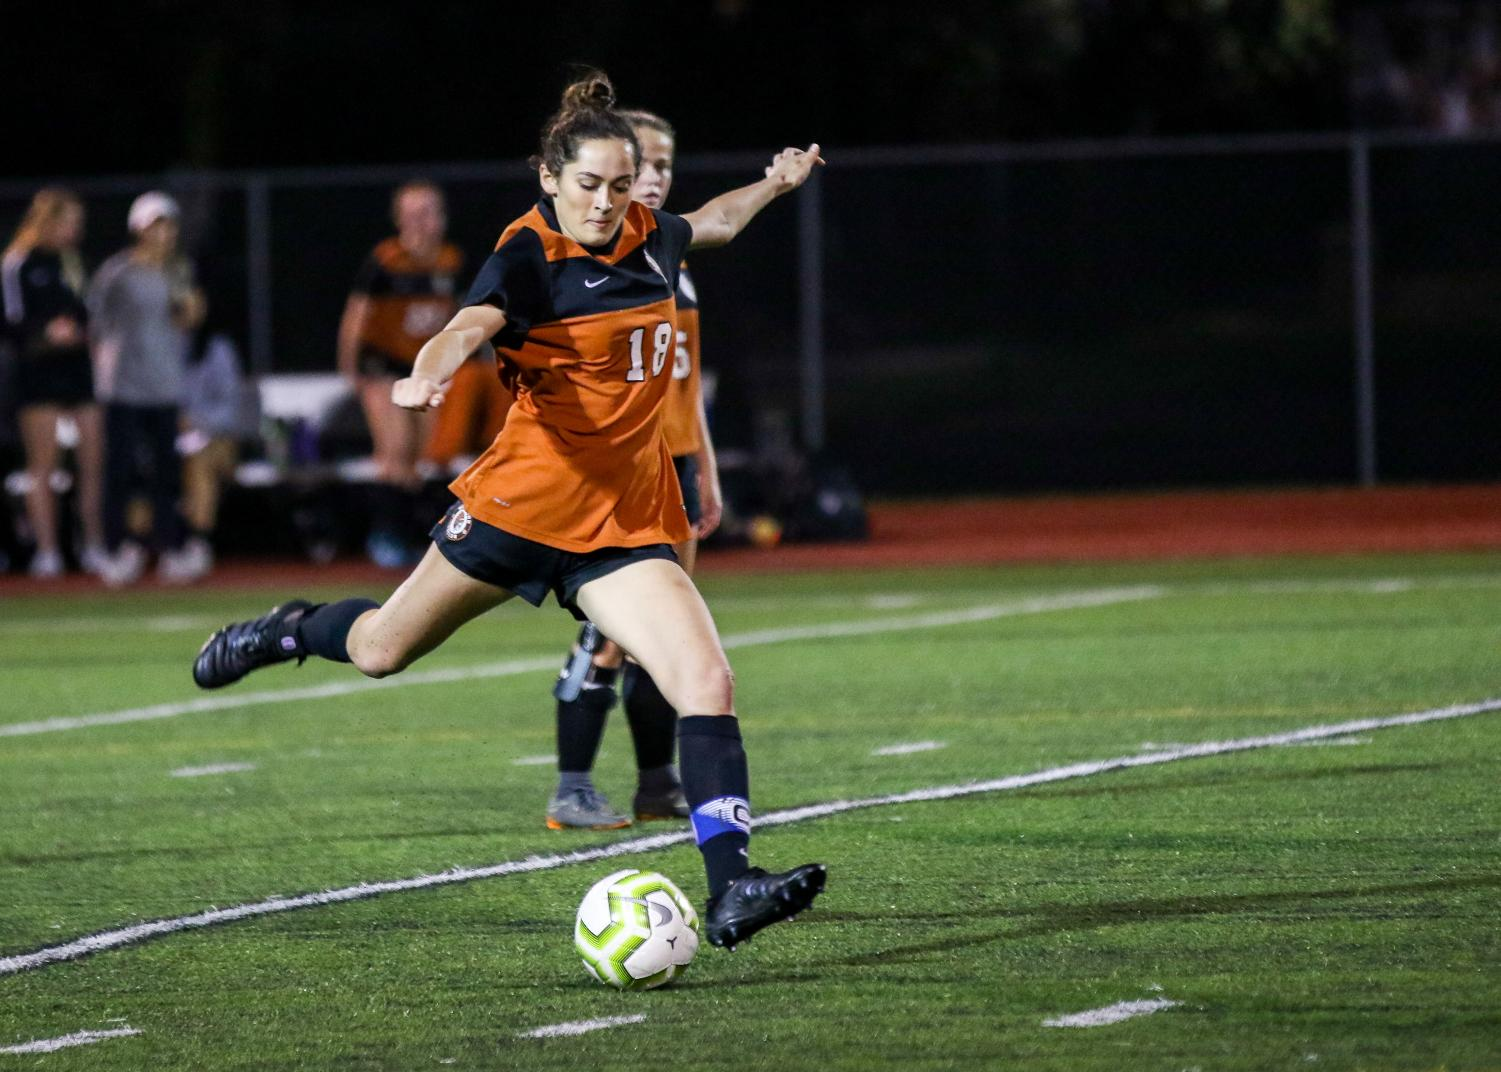 In+the+air%2C+Claire+Carpenter+%2721+kicks+the+ball+towards+the+goal.+Since+Carpenter+plays+middle%2Fforward%2C+she+focuses+more+on+scoring+and+dribbling+the+ball+well.+